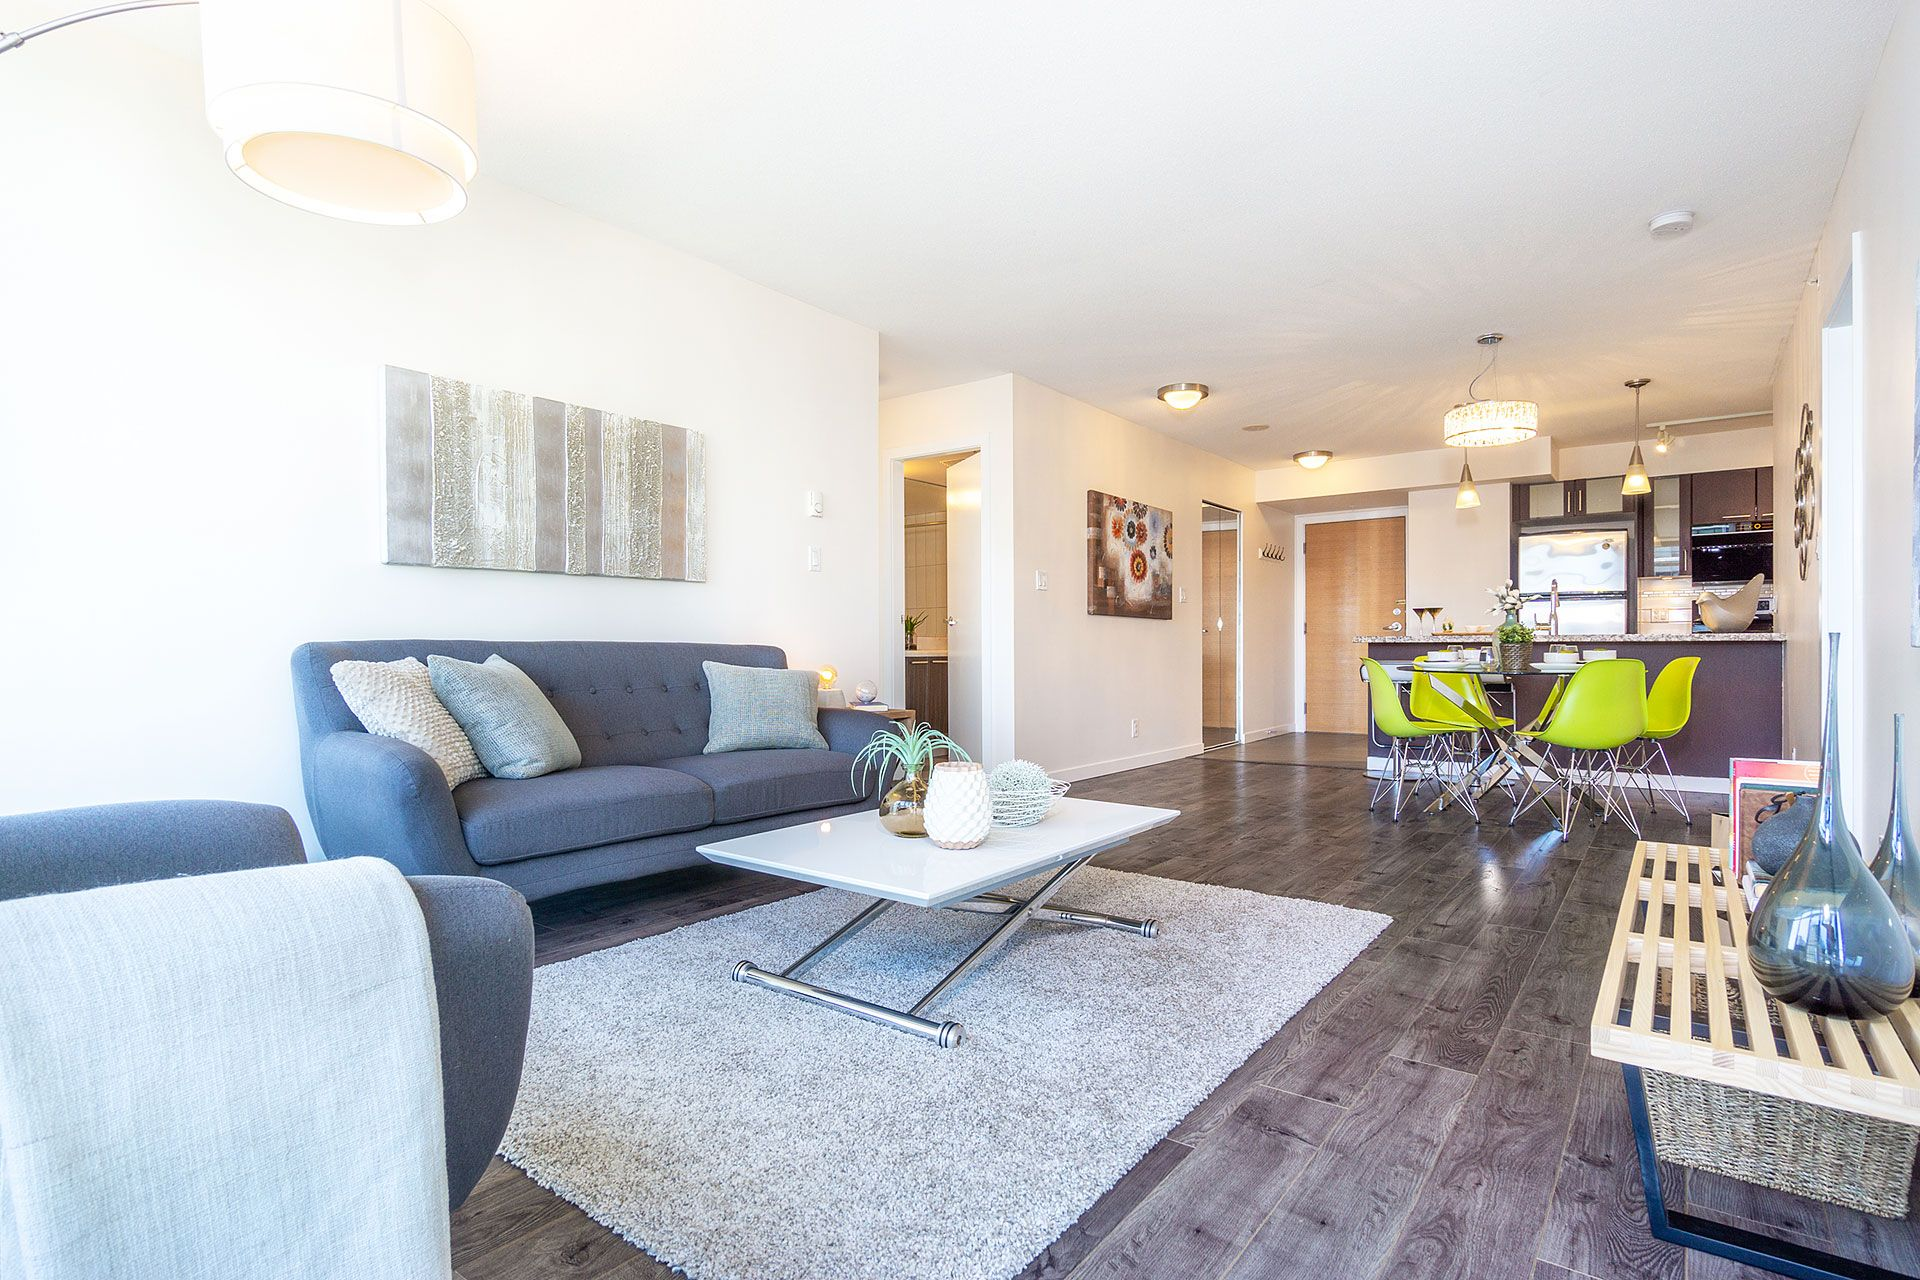 """Main Photo: 802 7888 SABA Road in Richmond: Brighouse Condo for sale in """"THE OPAL"""" : MLS®# R2415102"""